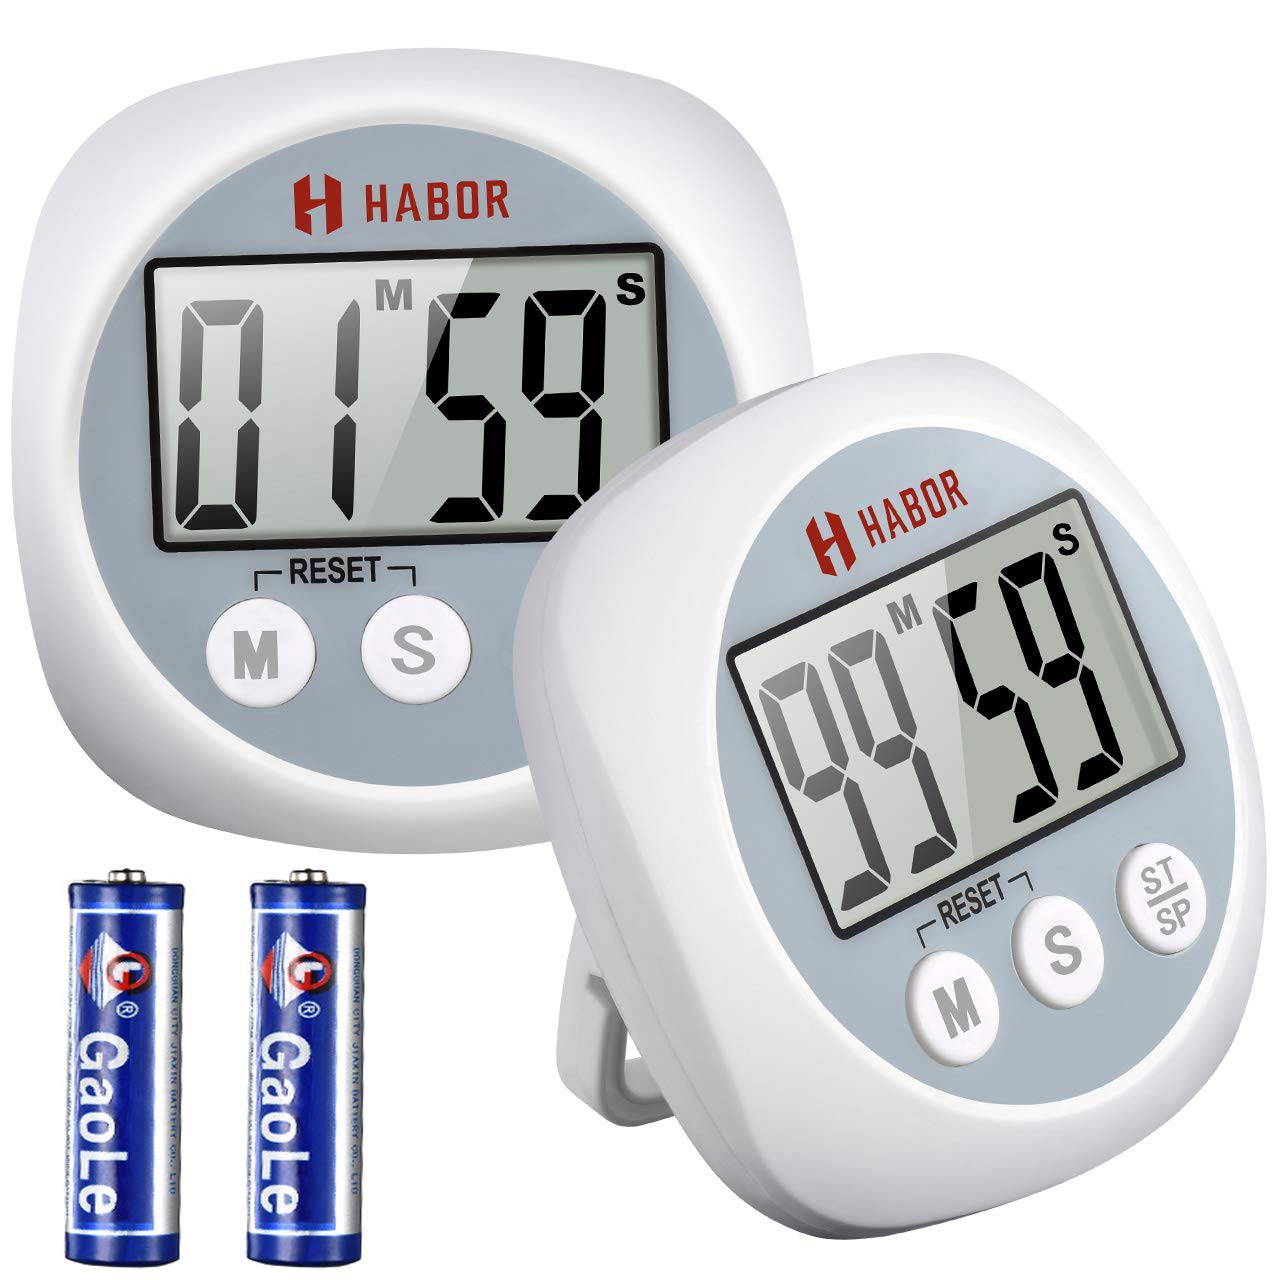 Habor 2 Pack Kitchen Timer Digital Cooking Timers, Big Digits Loud Alarm Magnetic Backing Stand on/off Switch, Minute Second Count up Countdown timer for Kids Baking Exercise Game (Batteries Included)